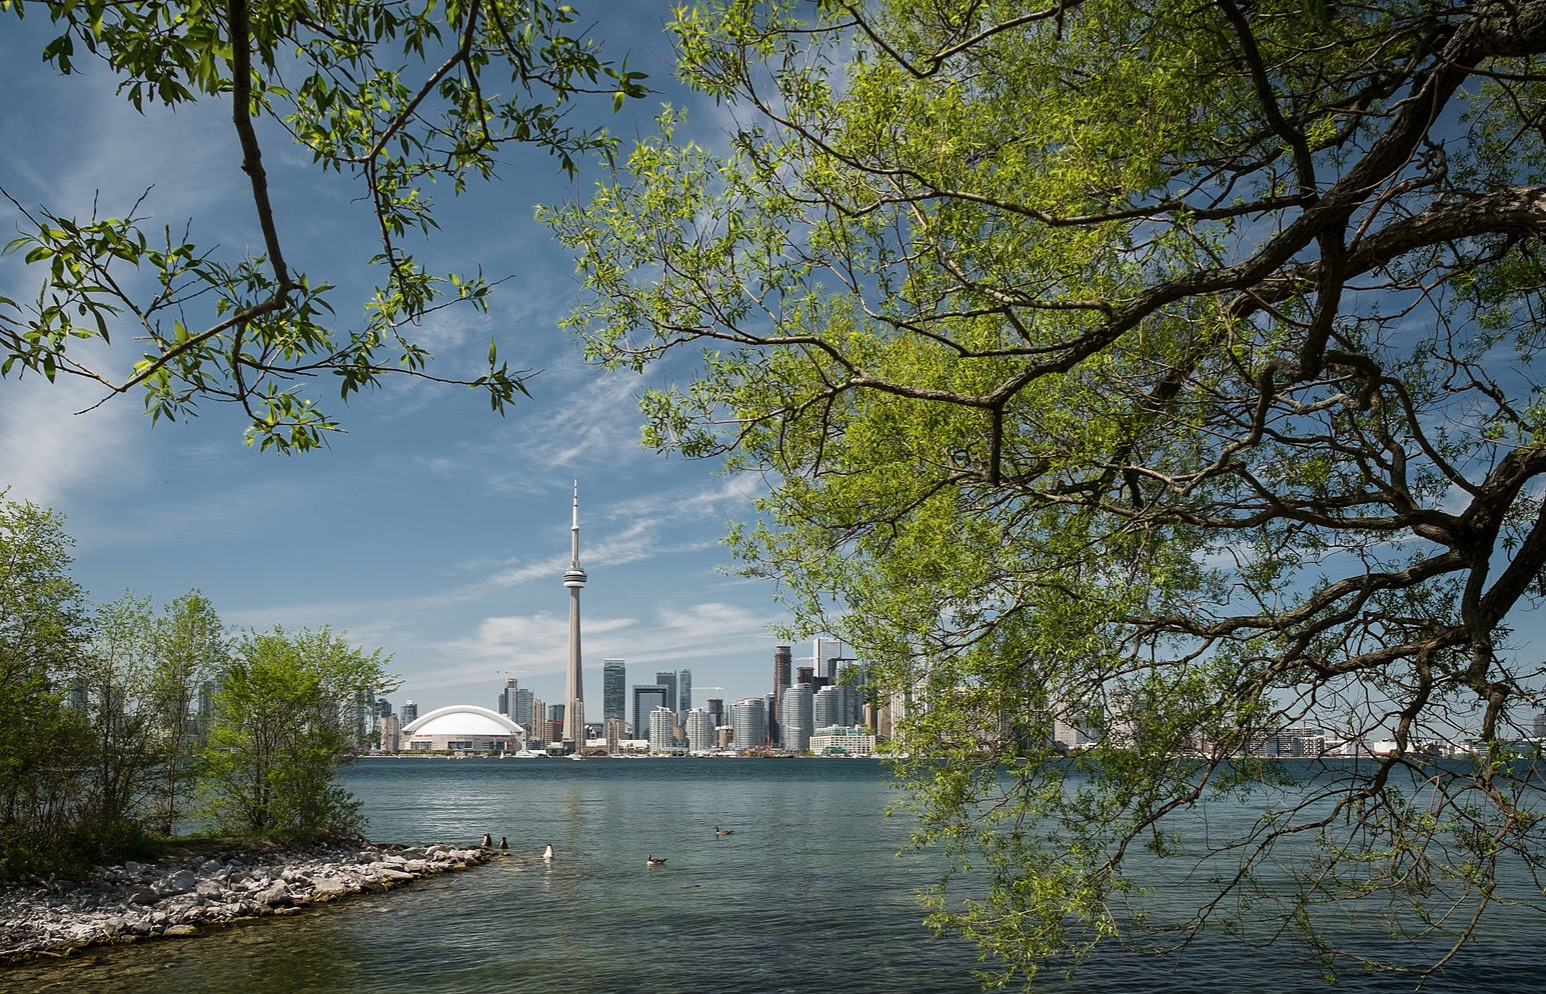 Seculed island in toronto